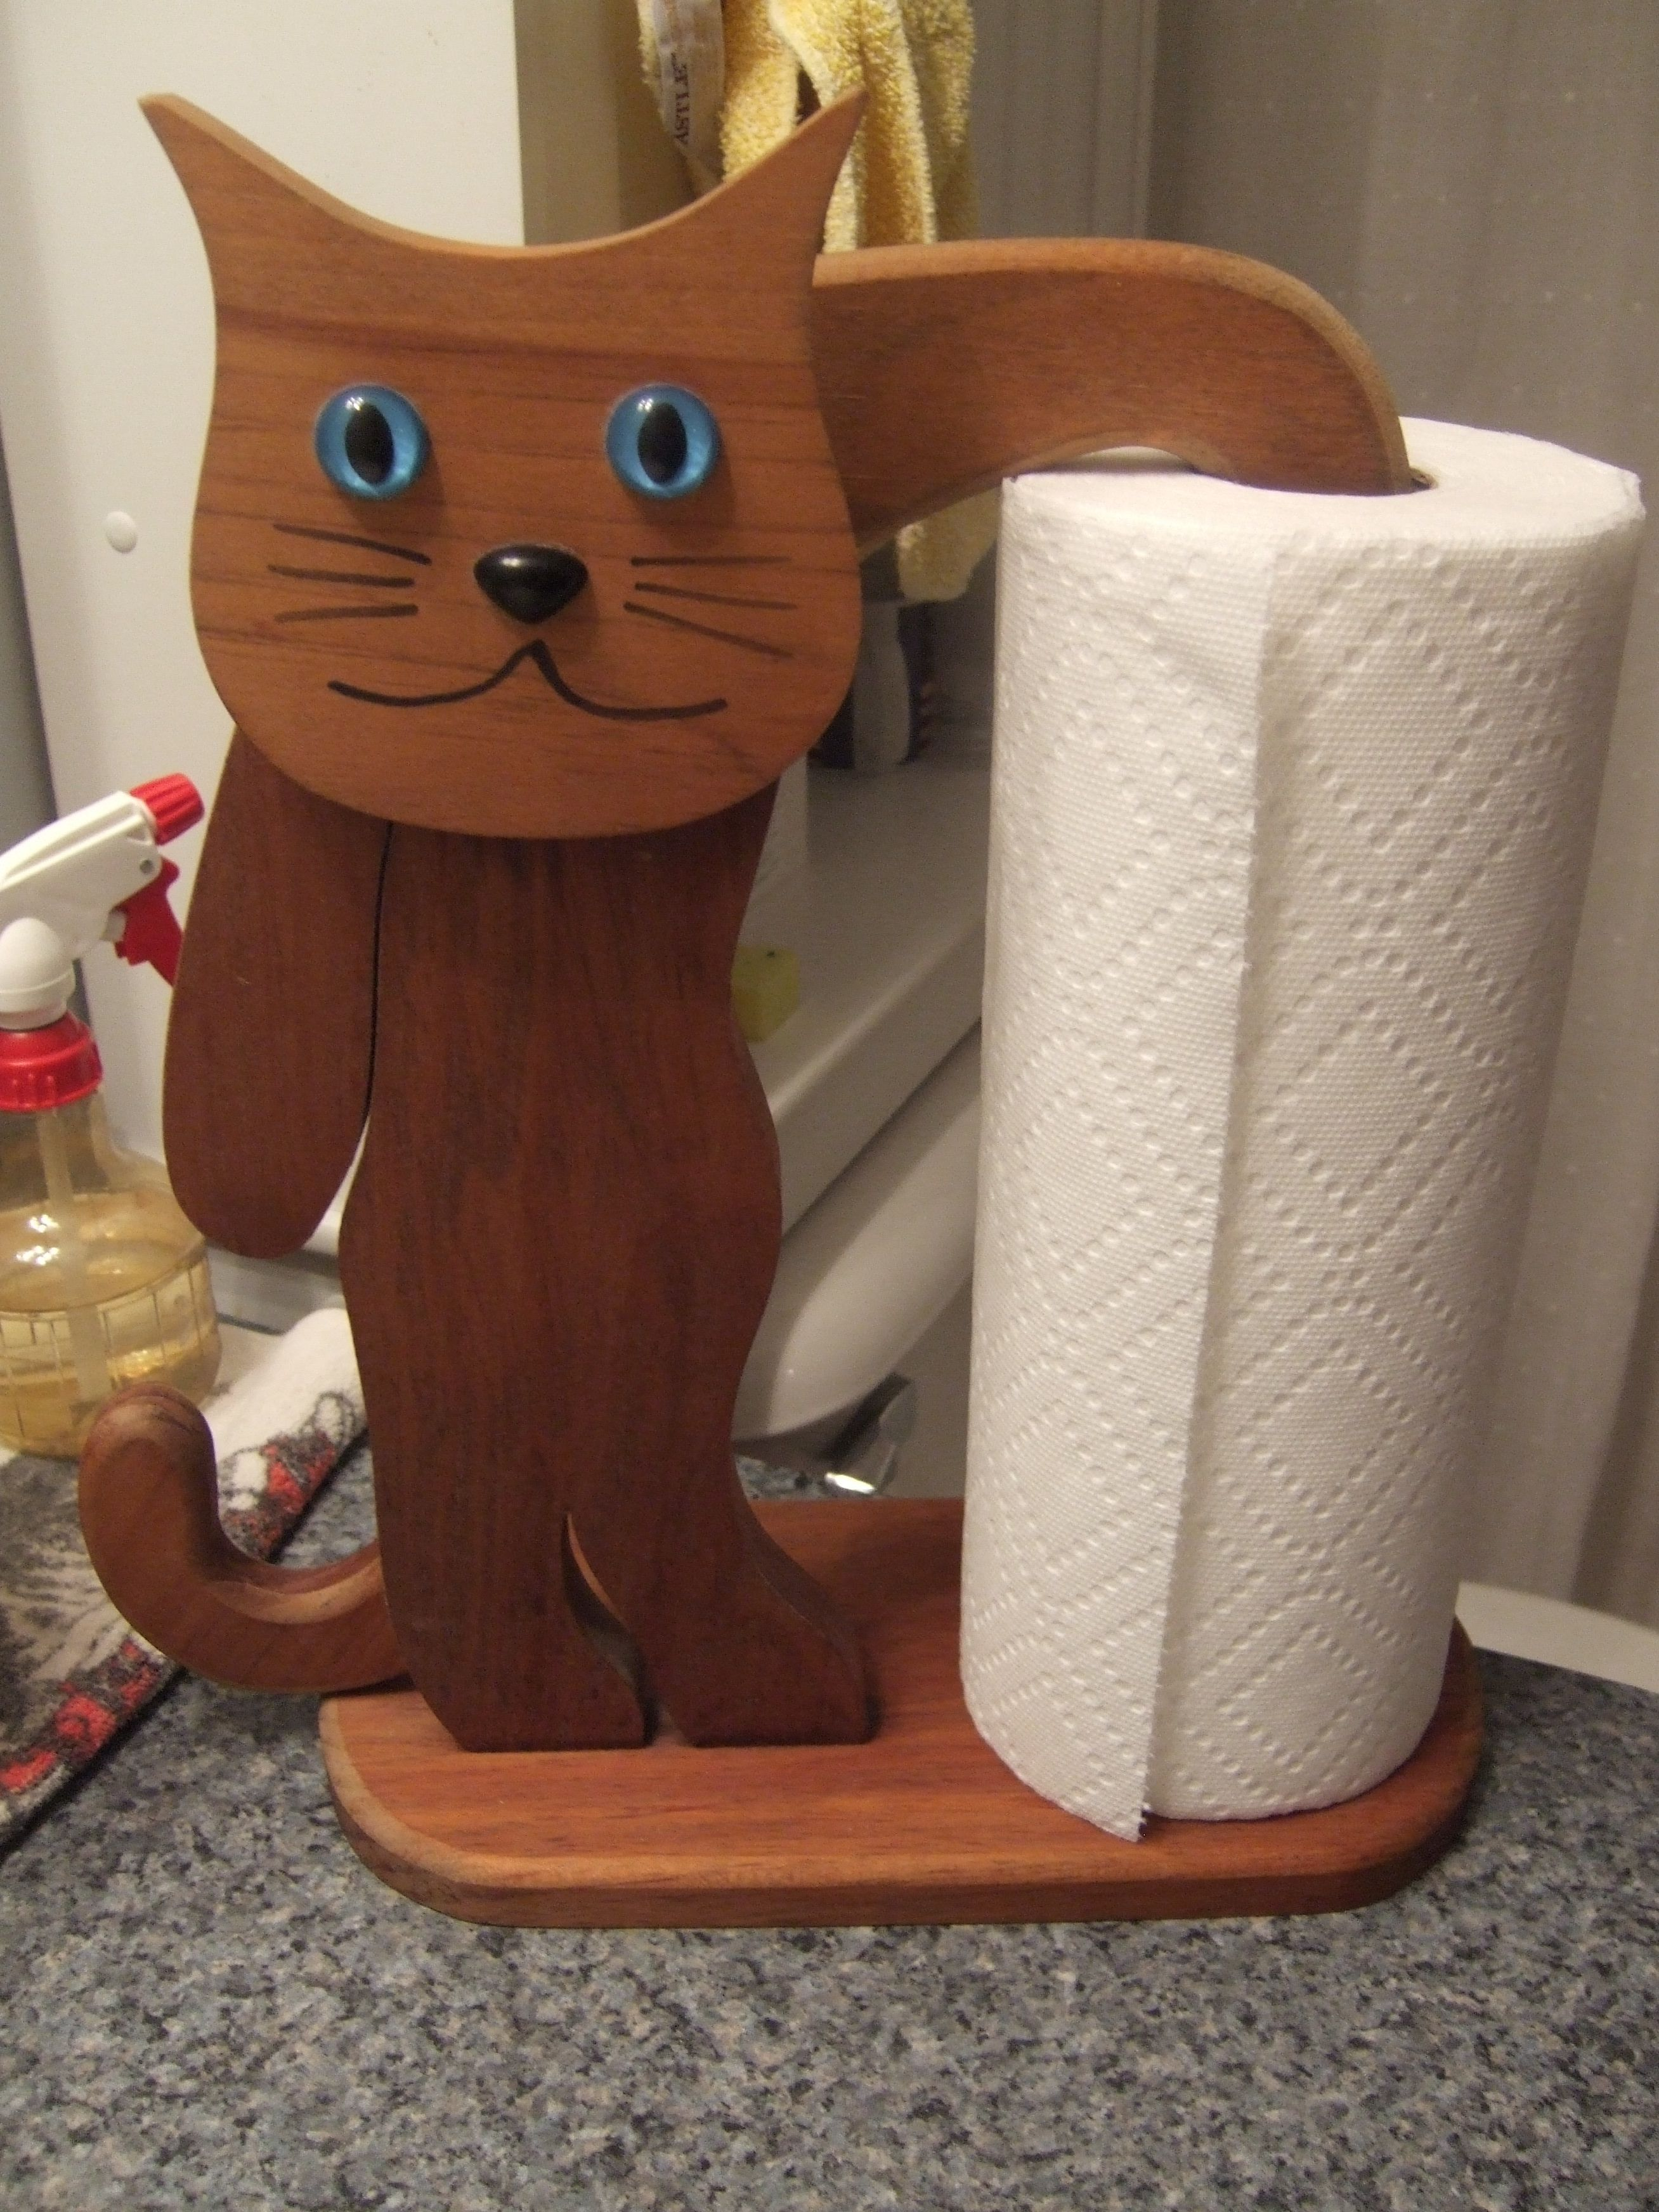 I found this paper towel holder at a yard sale. It freaks AJ out. I have to put ..., #freaks...